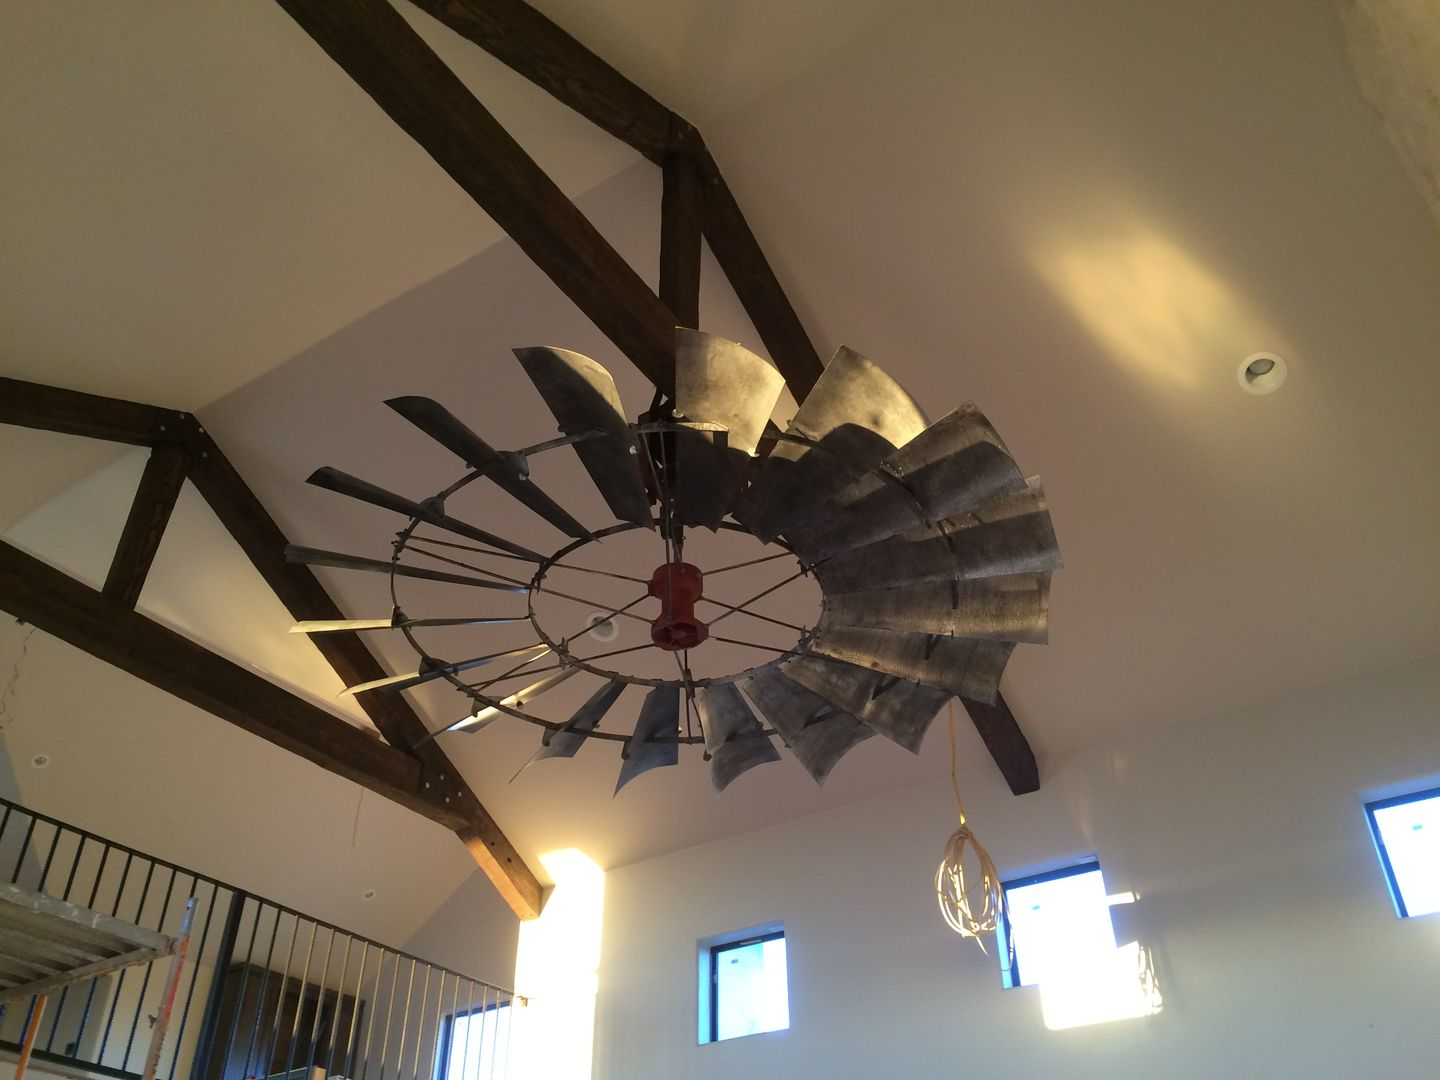 Unique Celing Fans create a conversation piece. windmill ceiling fans are a unique